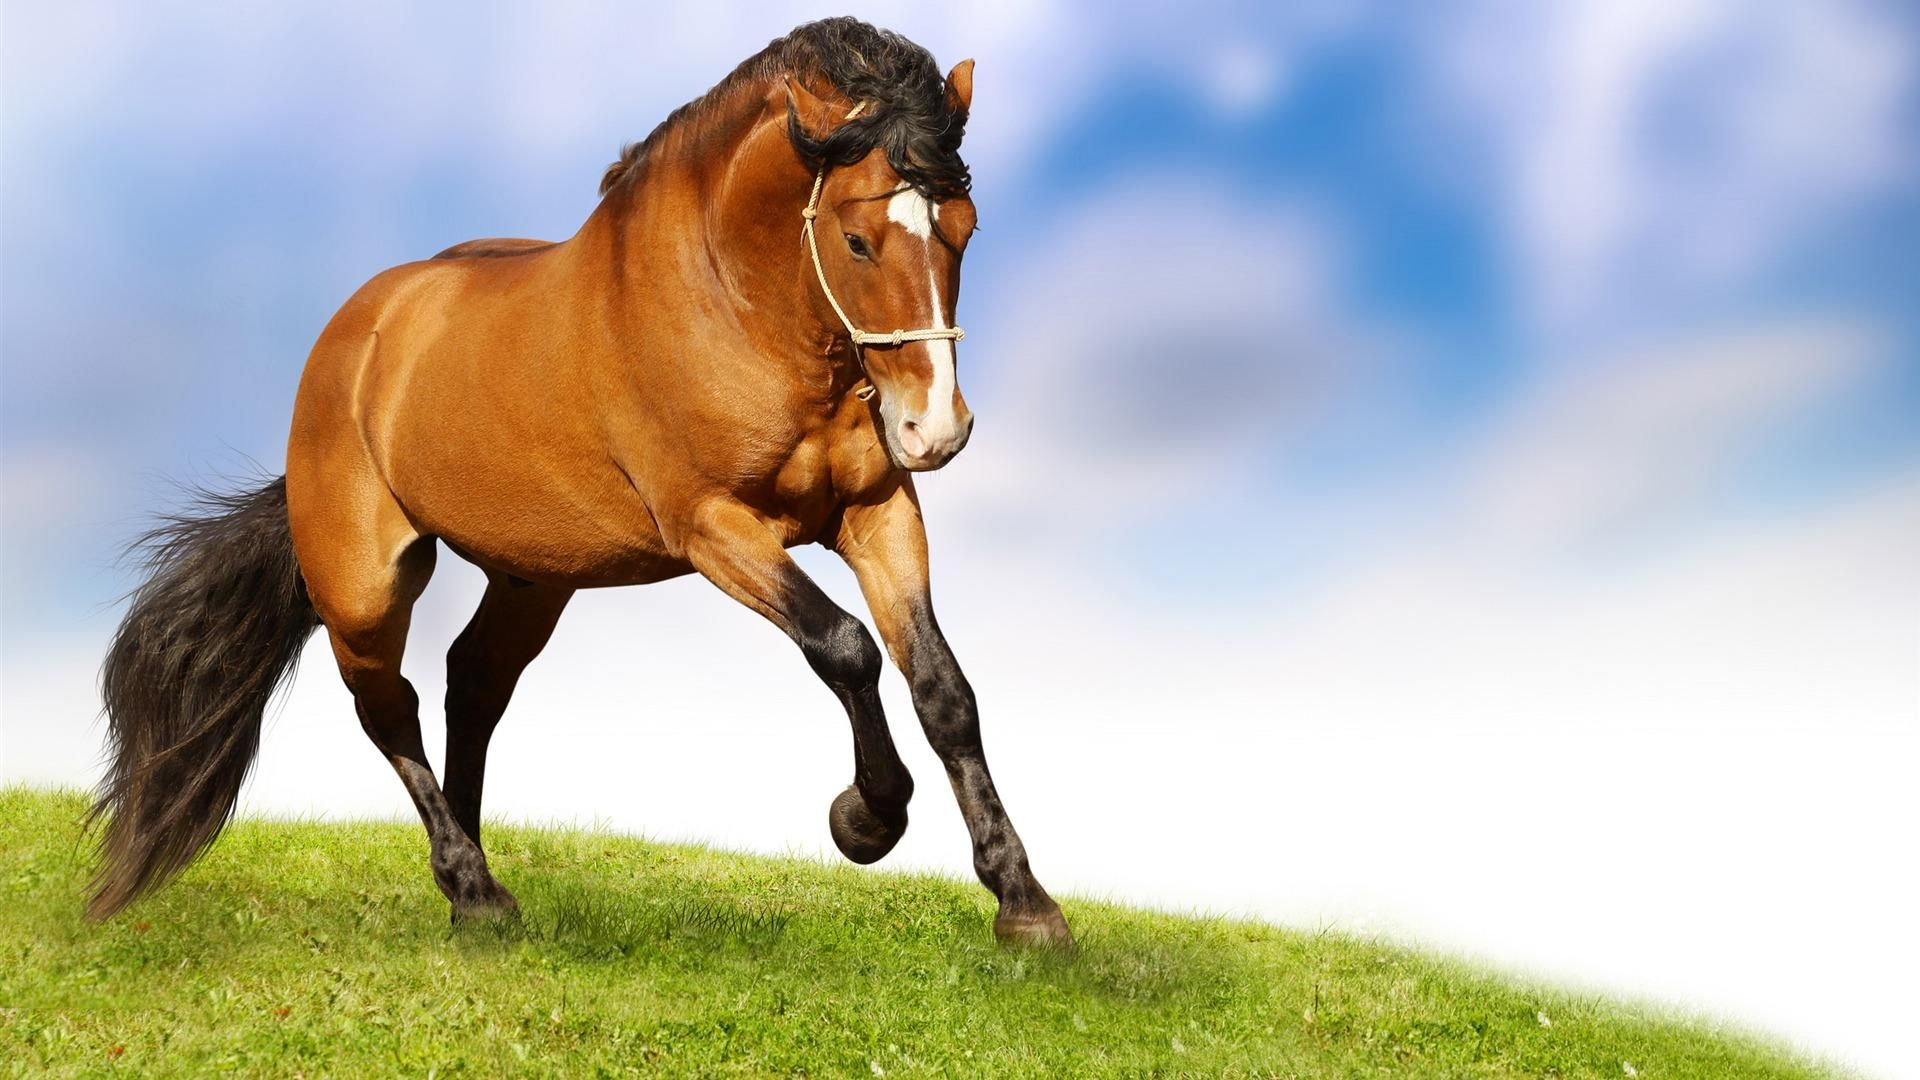 Hd wallpaper horse - Christmas Horses Wallpaper For Computer Home Animals Pictures Horse Wallpapers Horses Pinterest Horse Wallpaper And Wallpaper